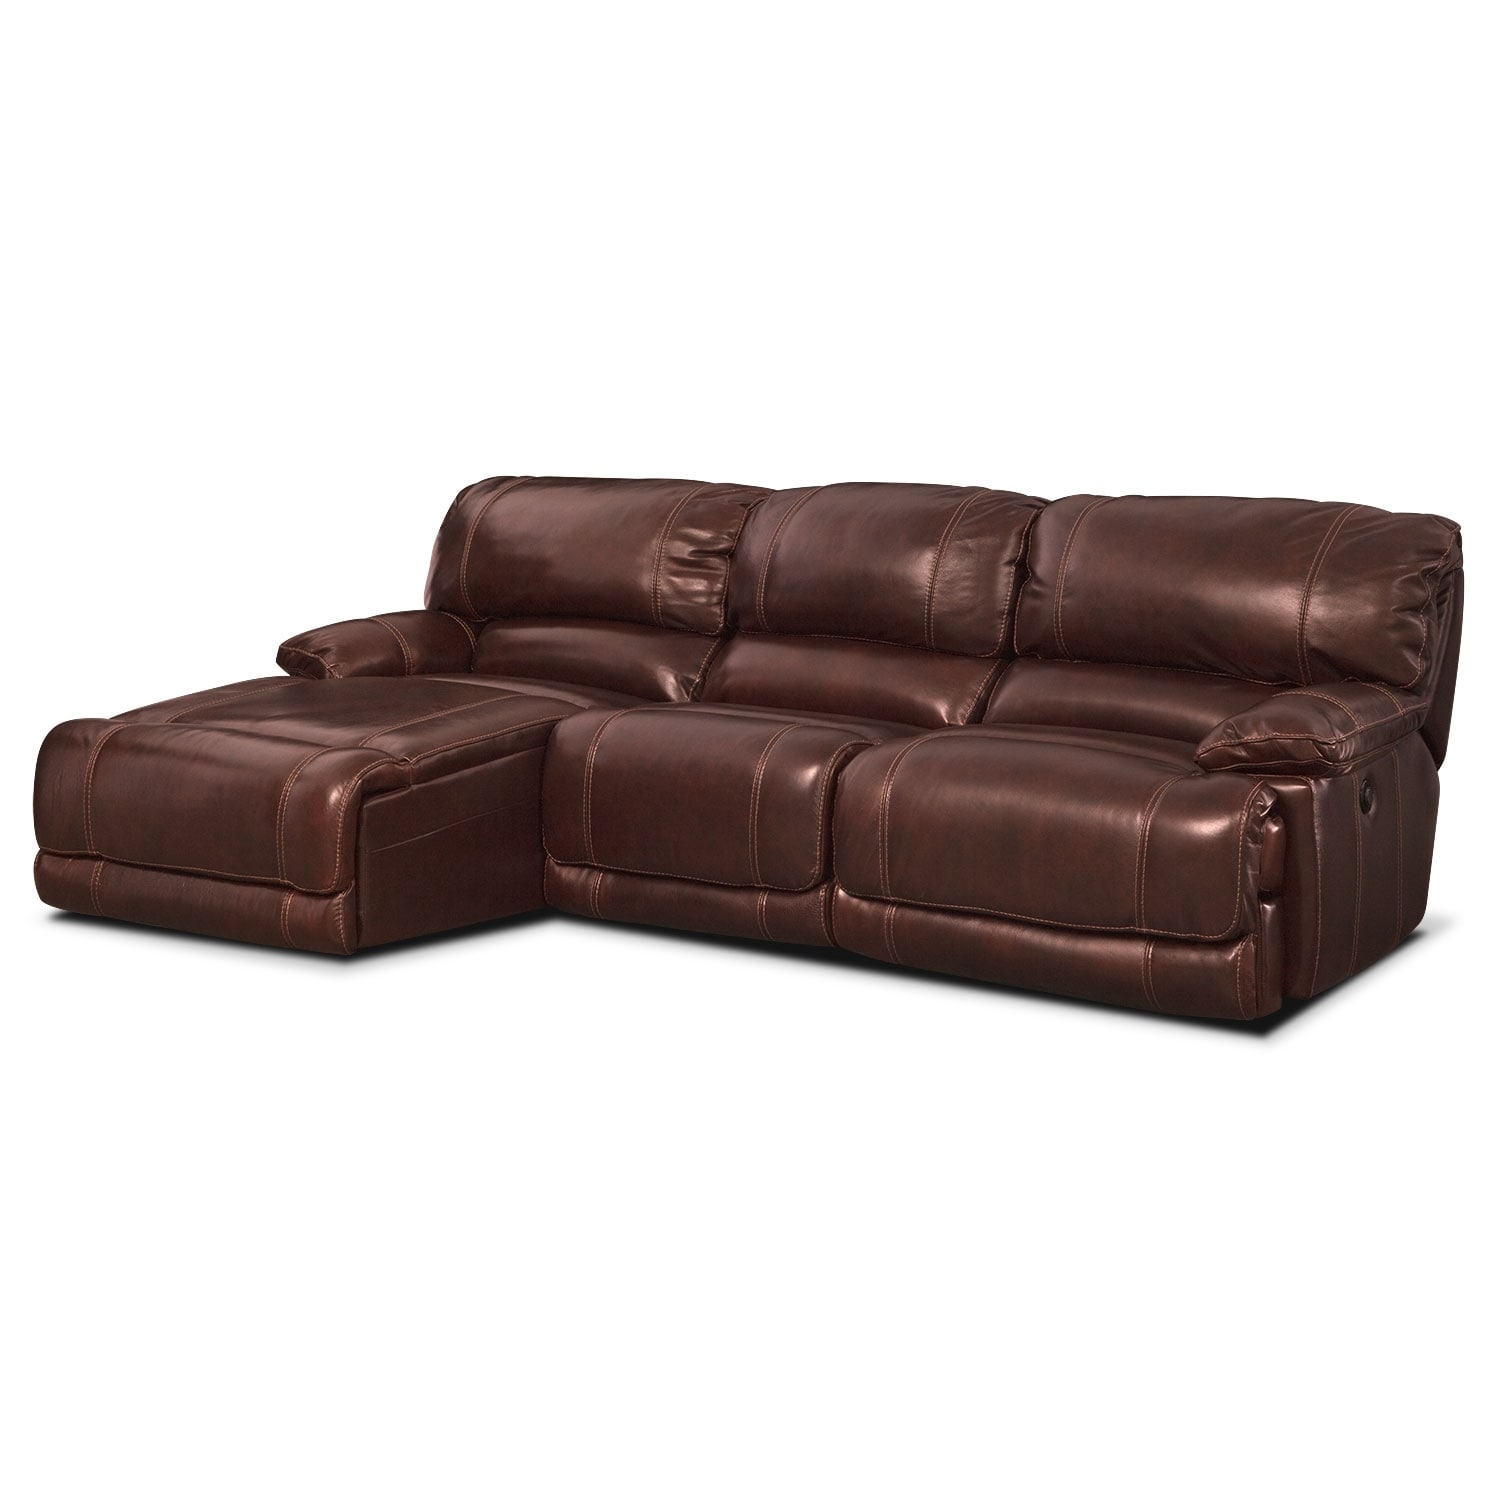 St. Malo 3-Piece Power Reclining Sectional with Left-Facing Chaise - Burgundy